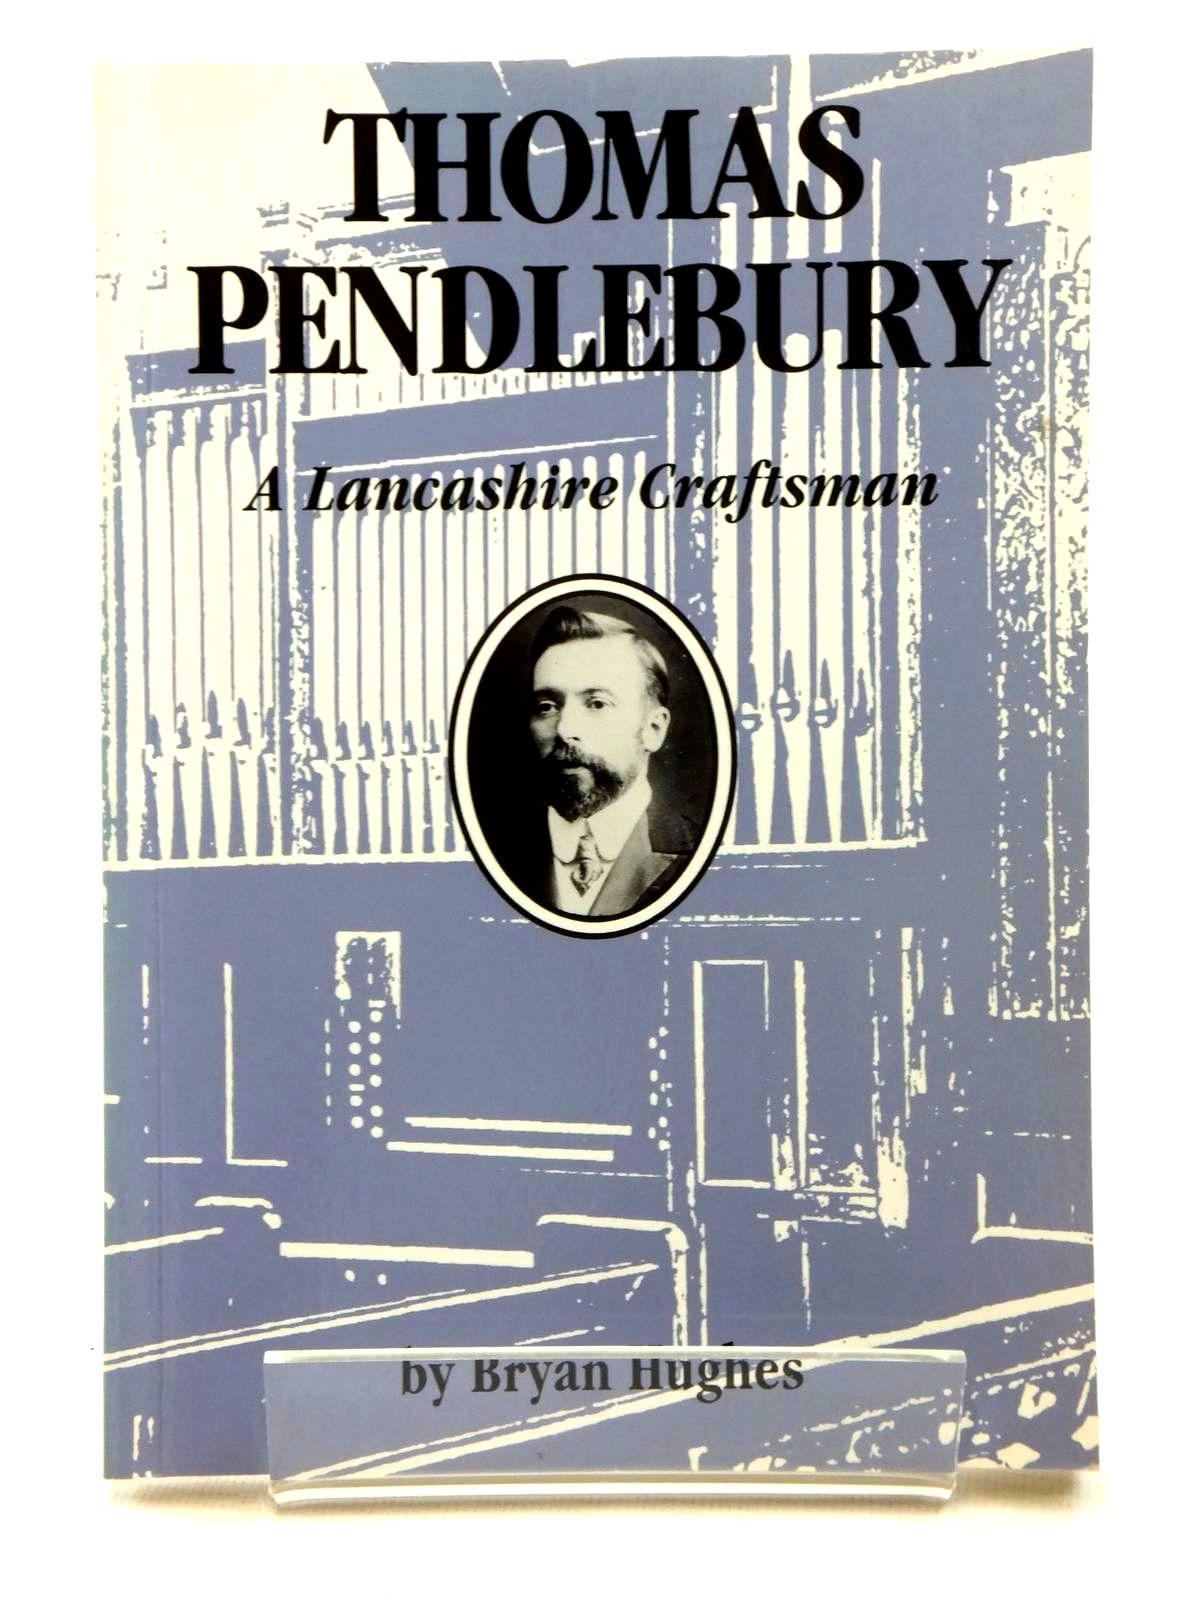 Photo of THOMAS PENDLEBURY A LANCASHIRE CRAFTSMAN written by Hughes, Bryan published by Owl Books (STOCK CODE: 1814836)  for sale by Stella & Rose's Books